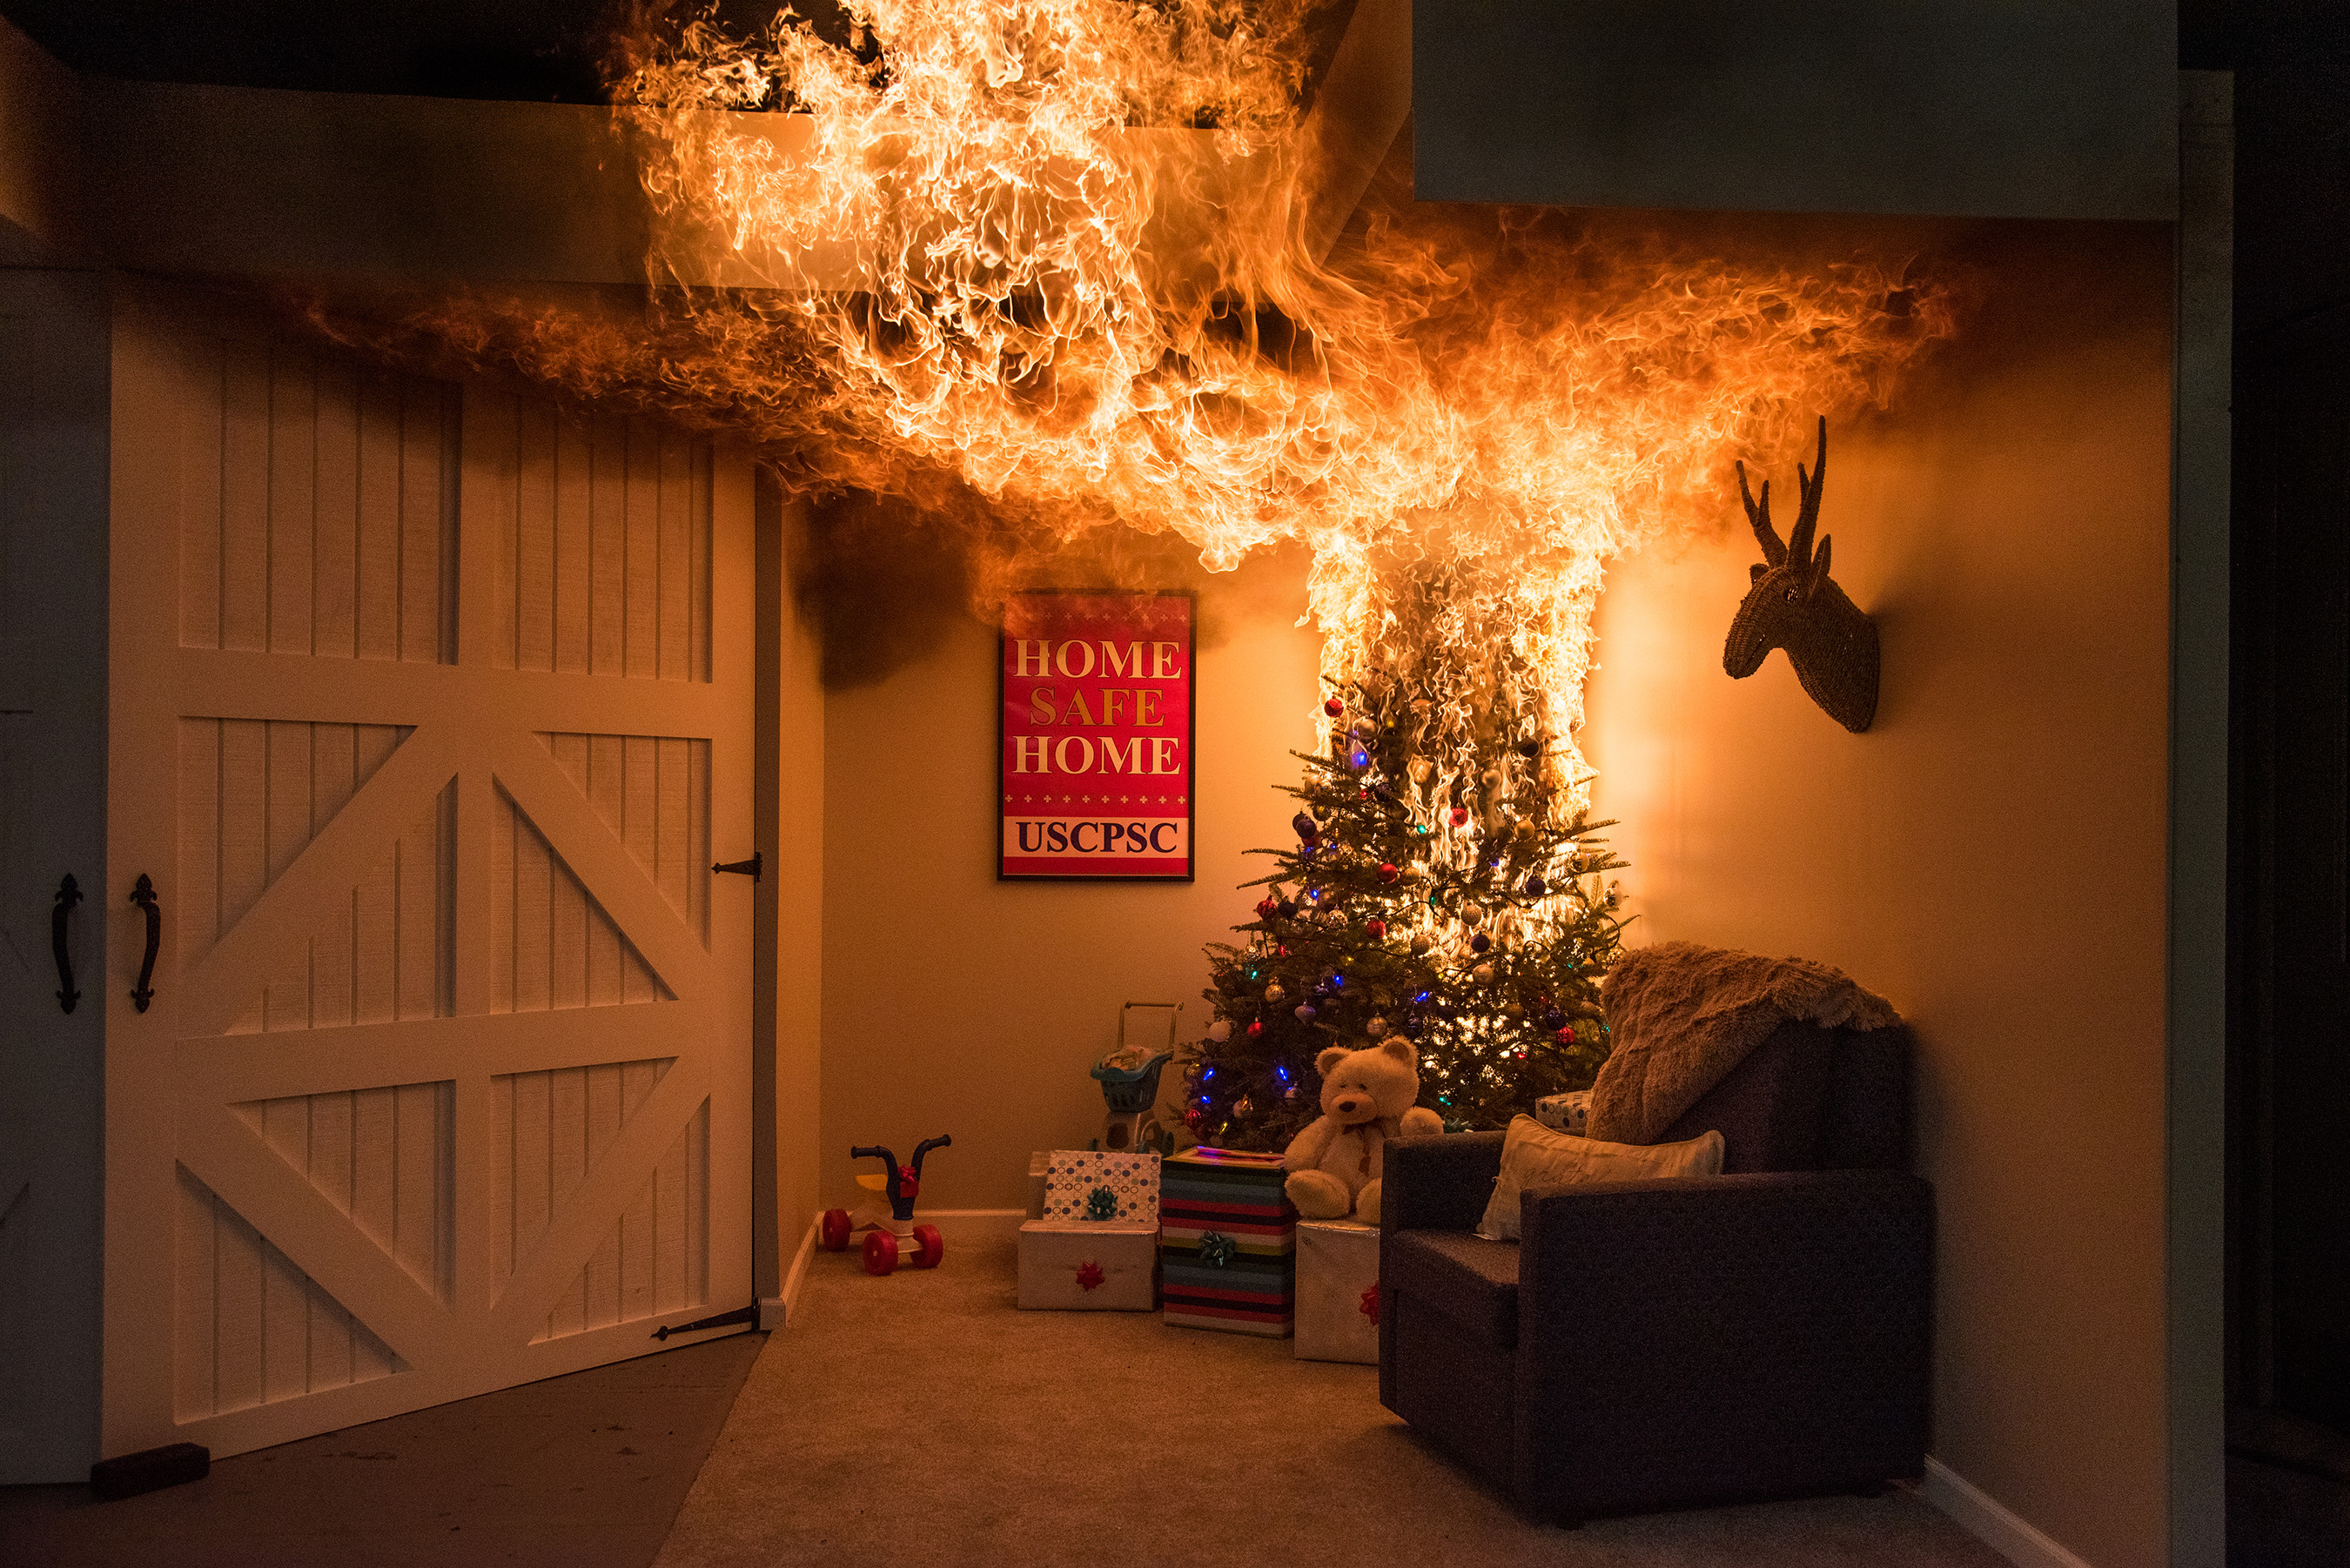 Home Safe Home Cpsc And Interior Designer Sabrina Soto Share Holiday Safety Tips This Season